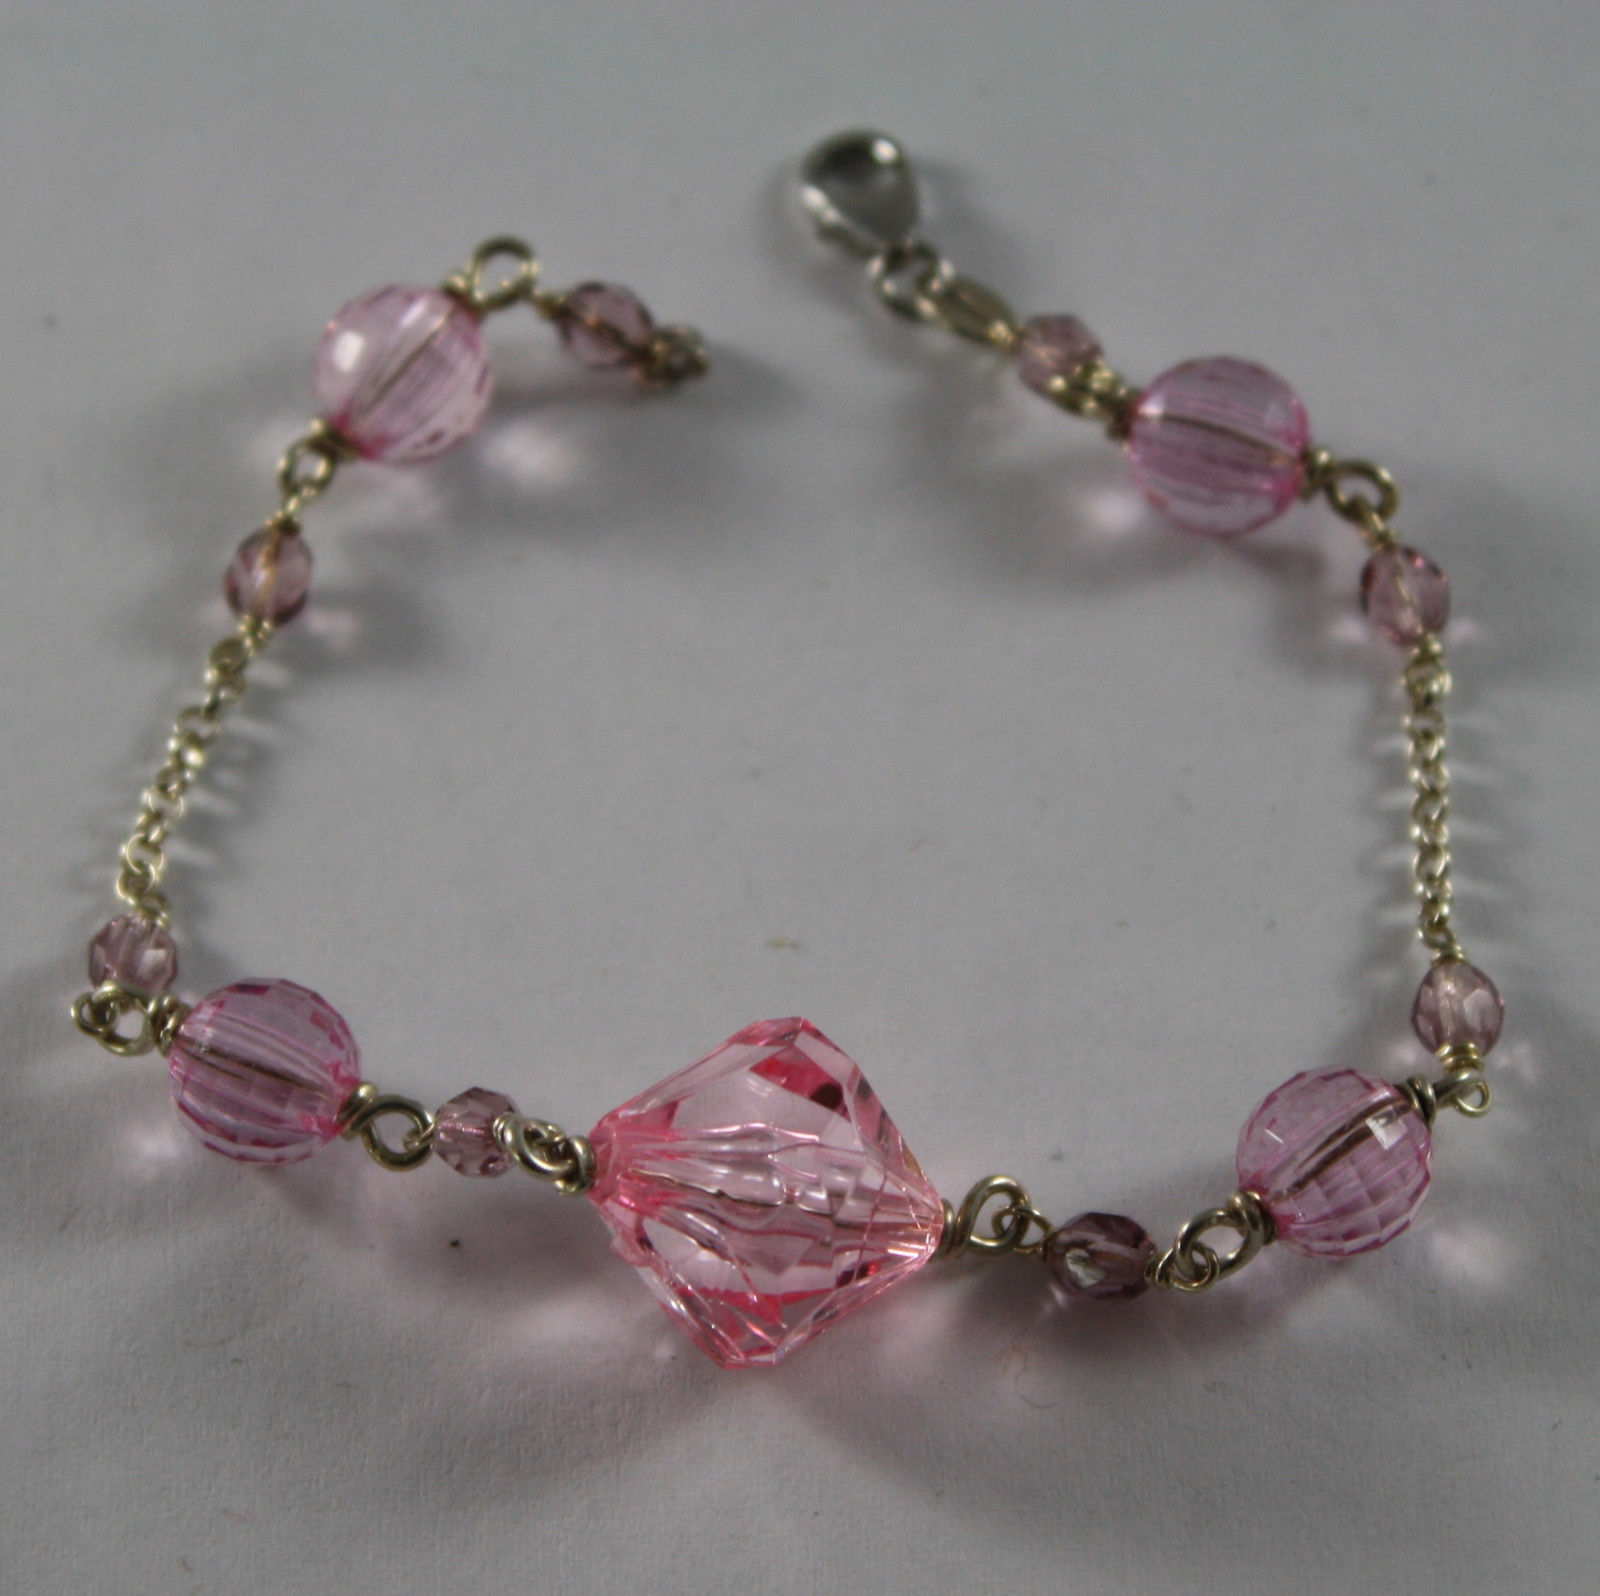 .925 RHODIUM SILVER BRACELET WITH PINK CRYSTALS